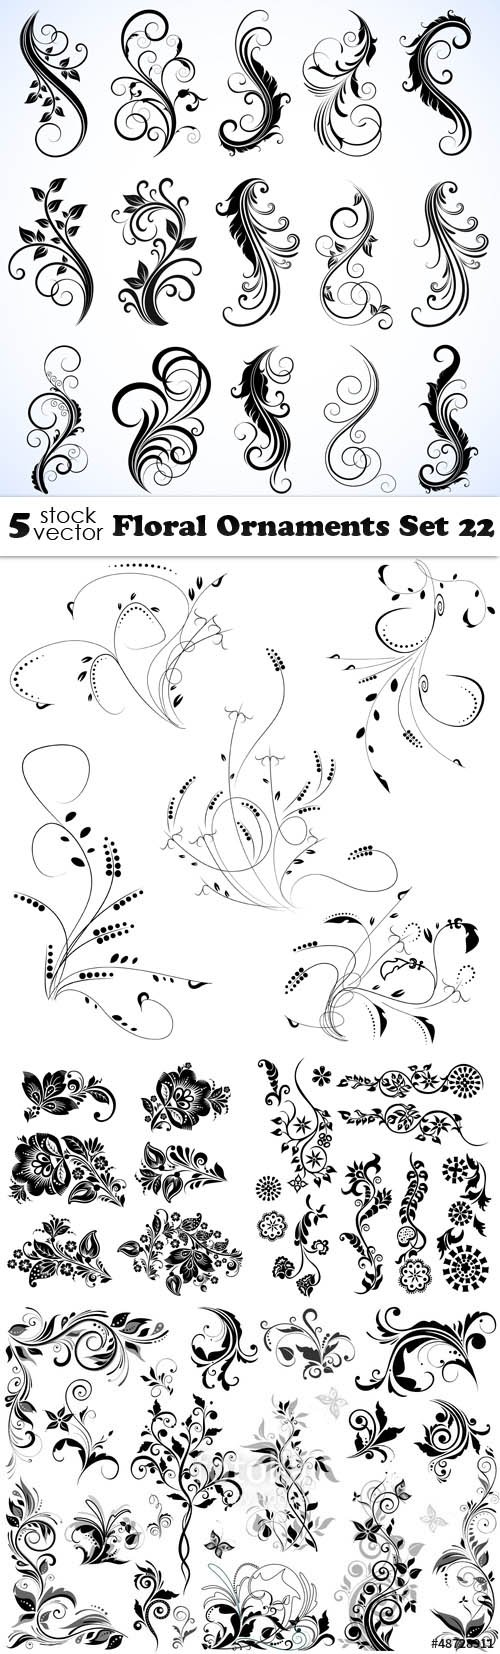 Vectors - Floral Ornaments Set 22